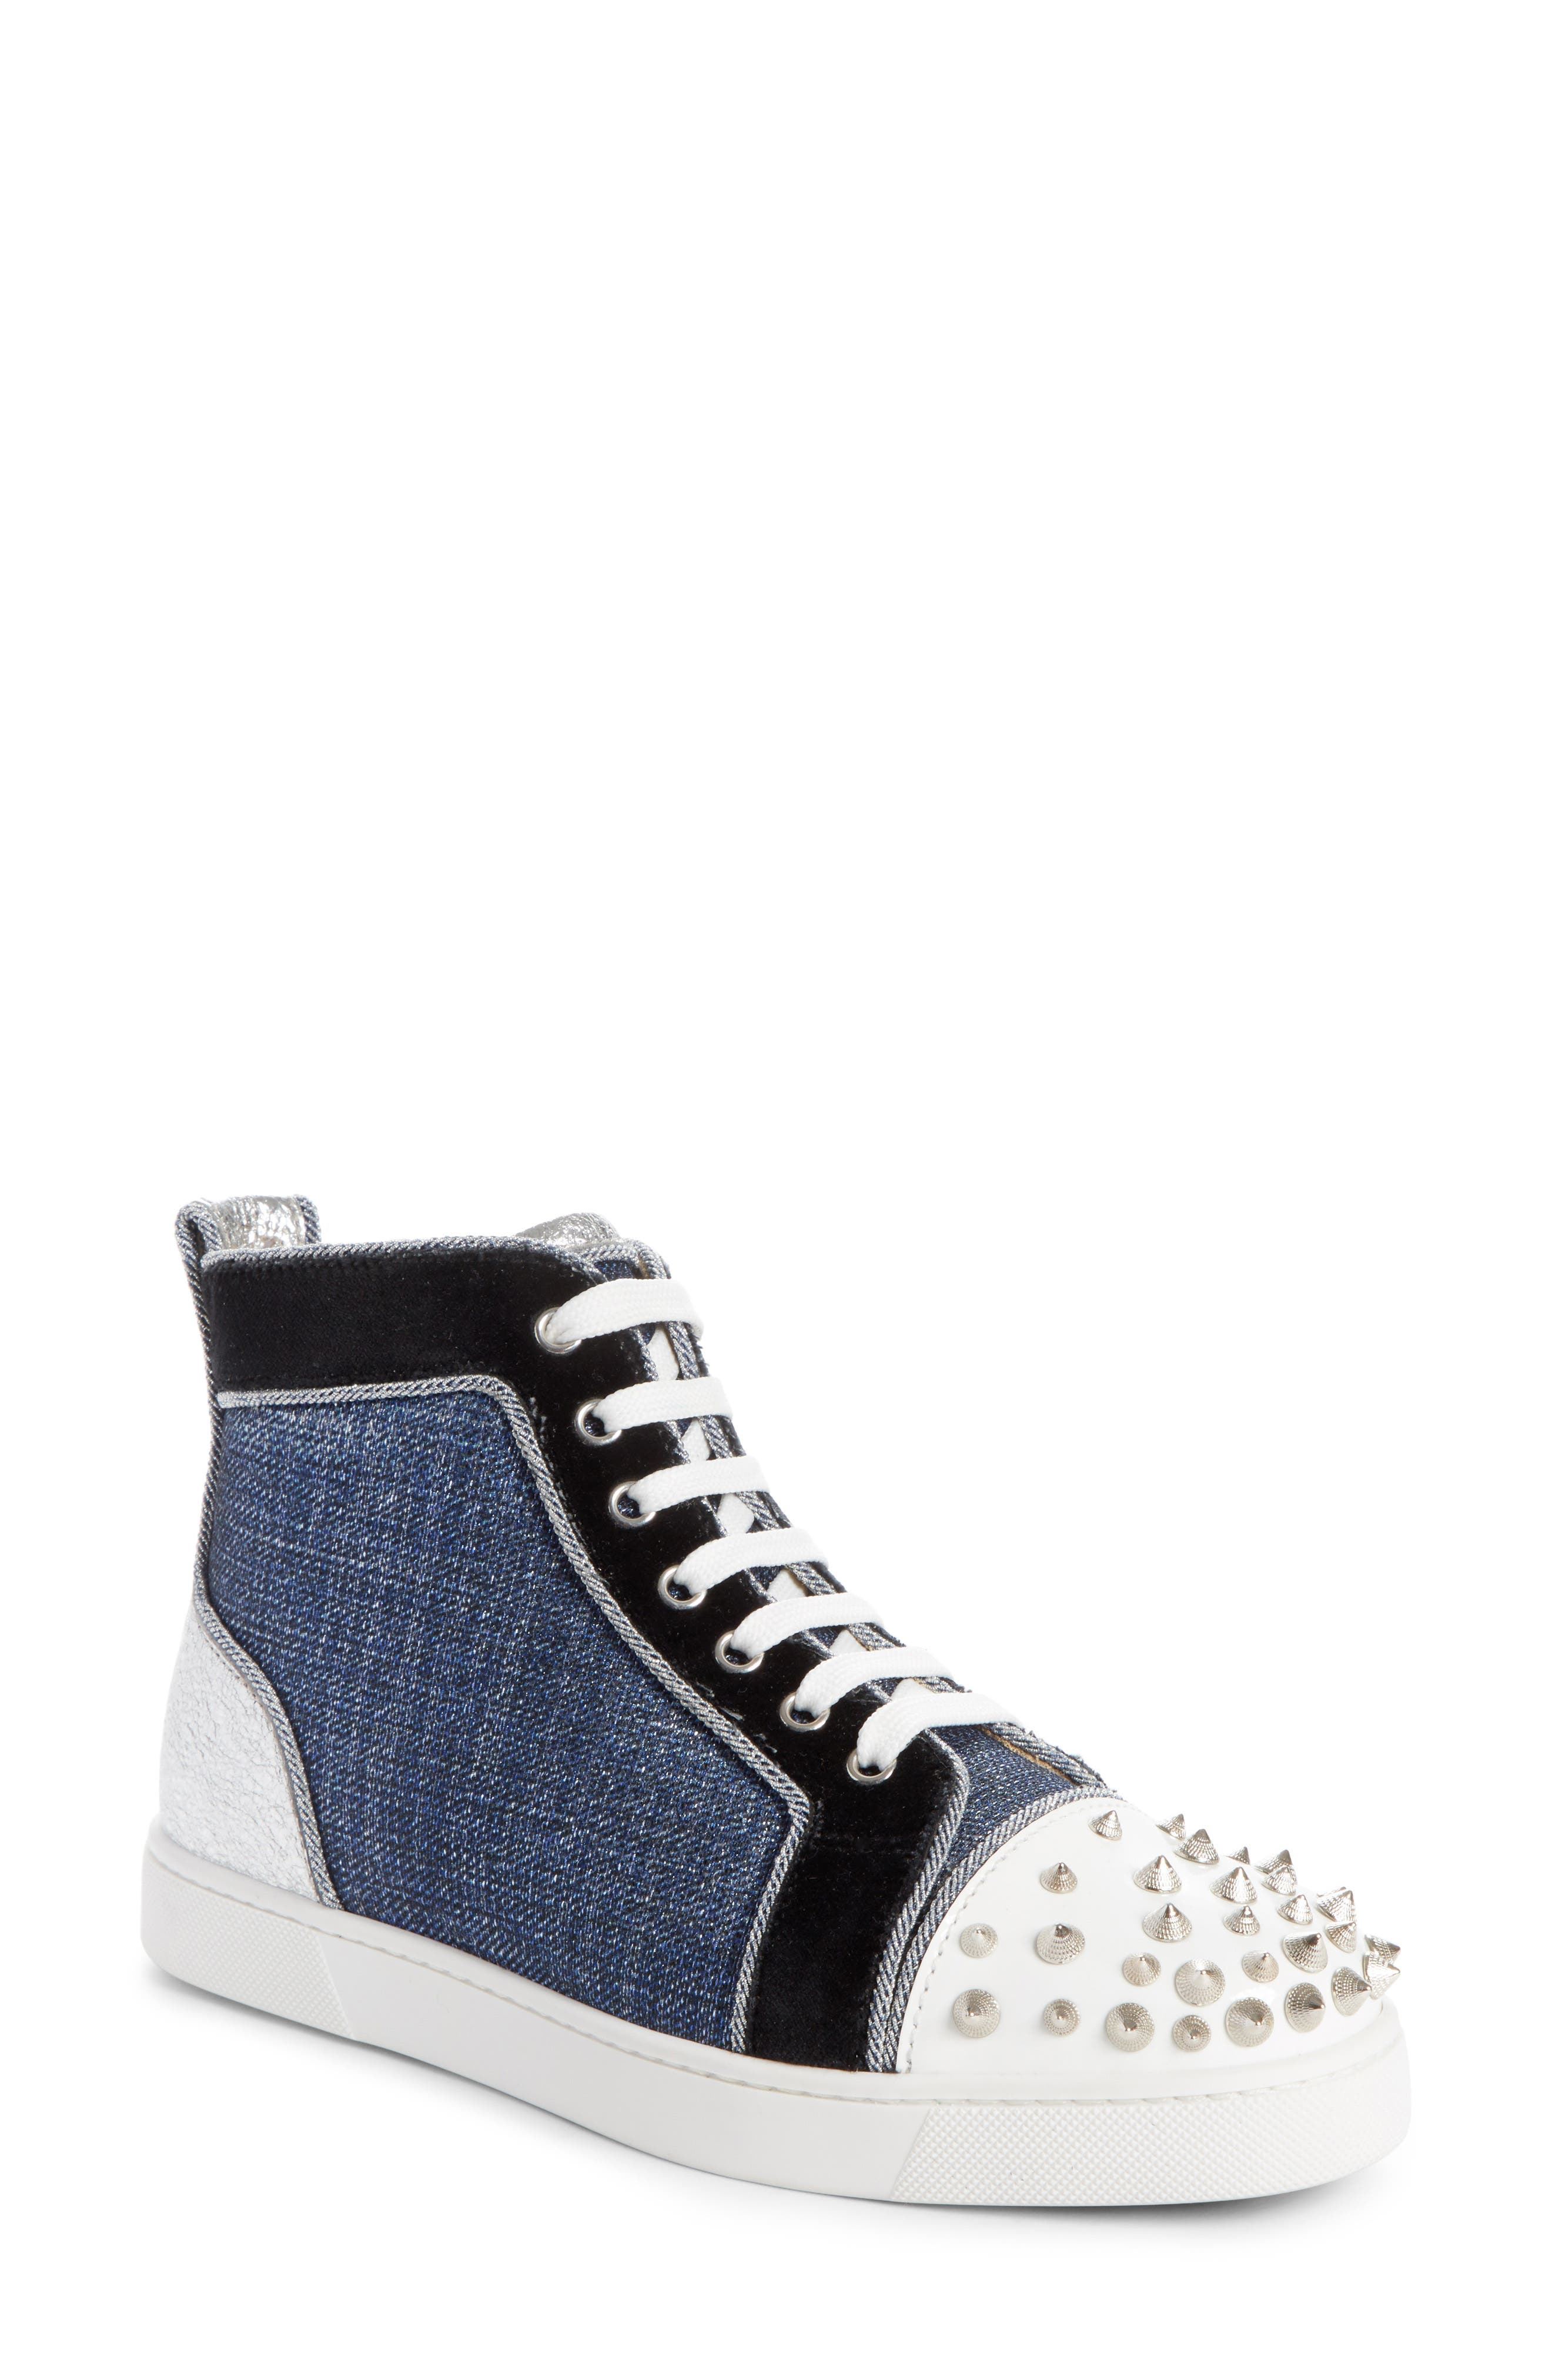 Lou Degra Spiked High Top Sneaker,                         Main,                         color, 400